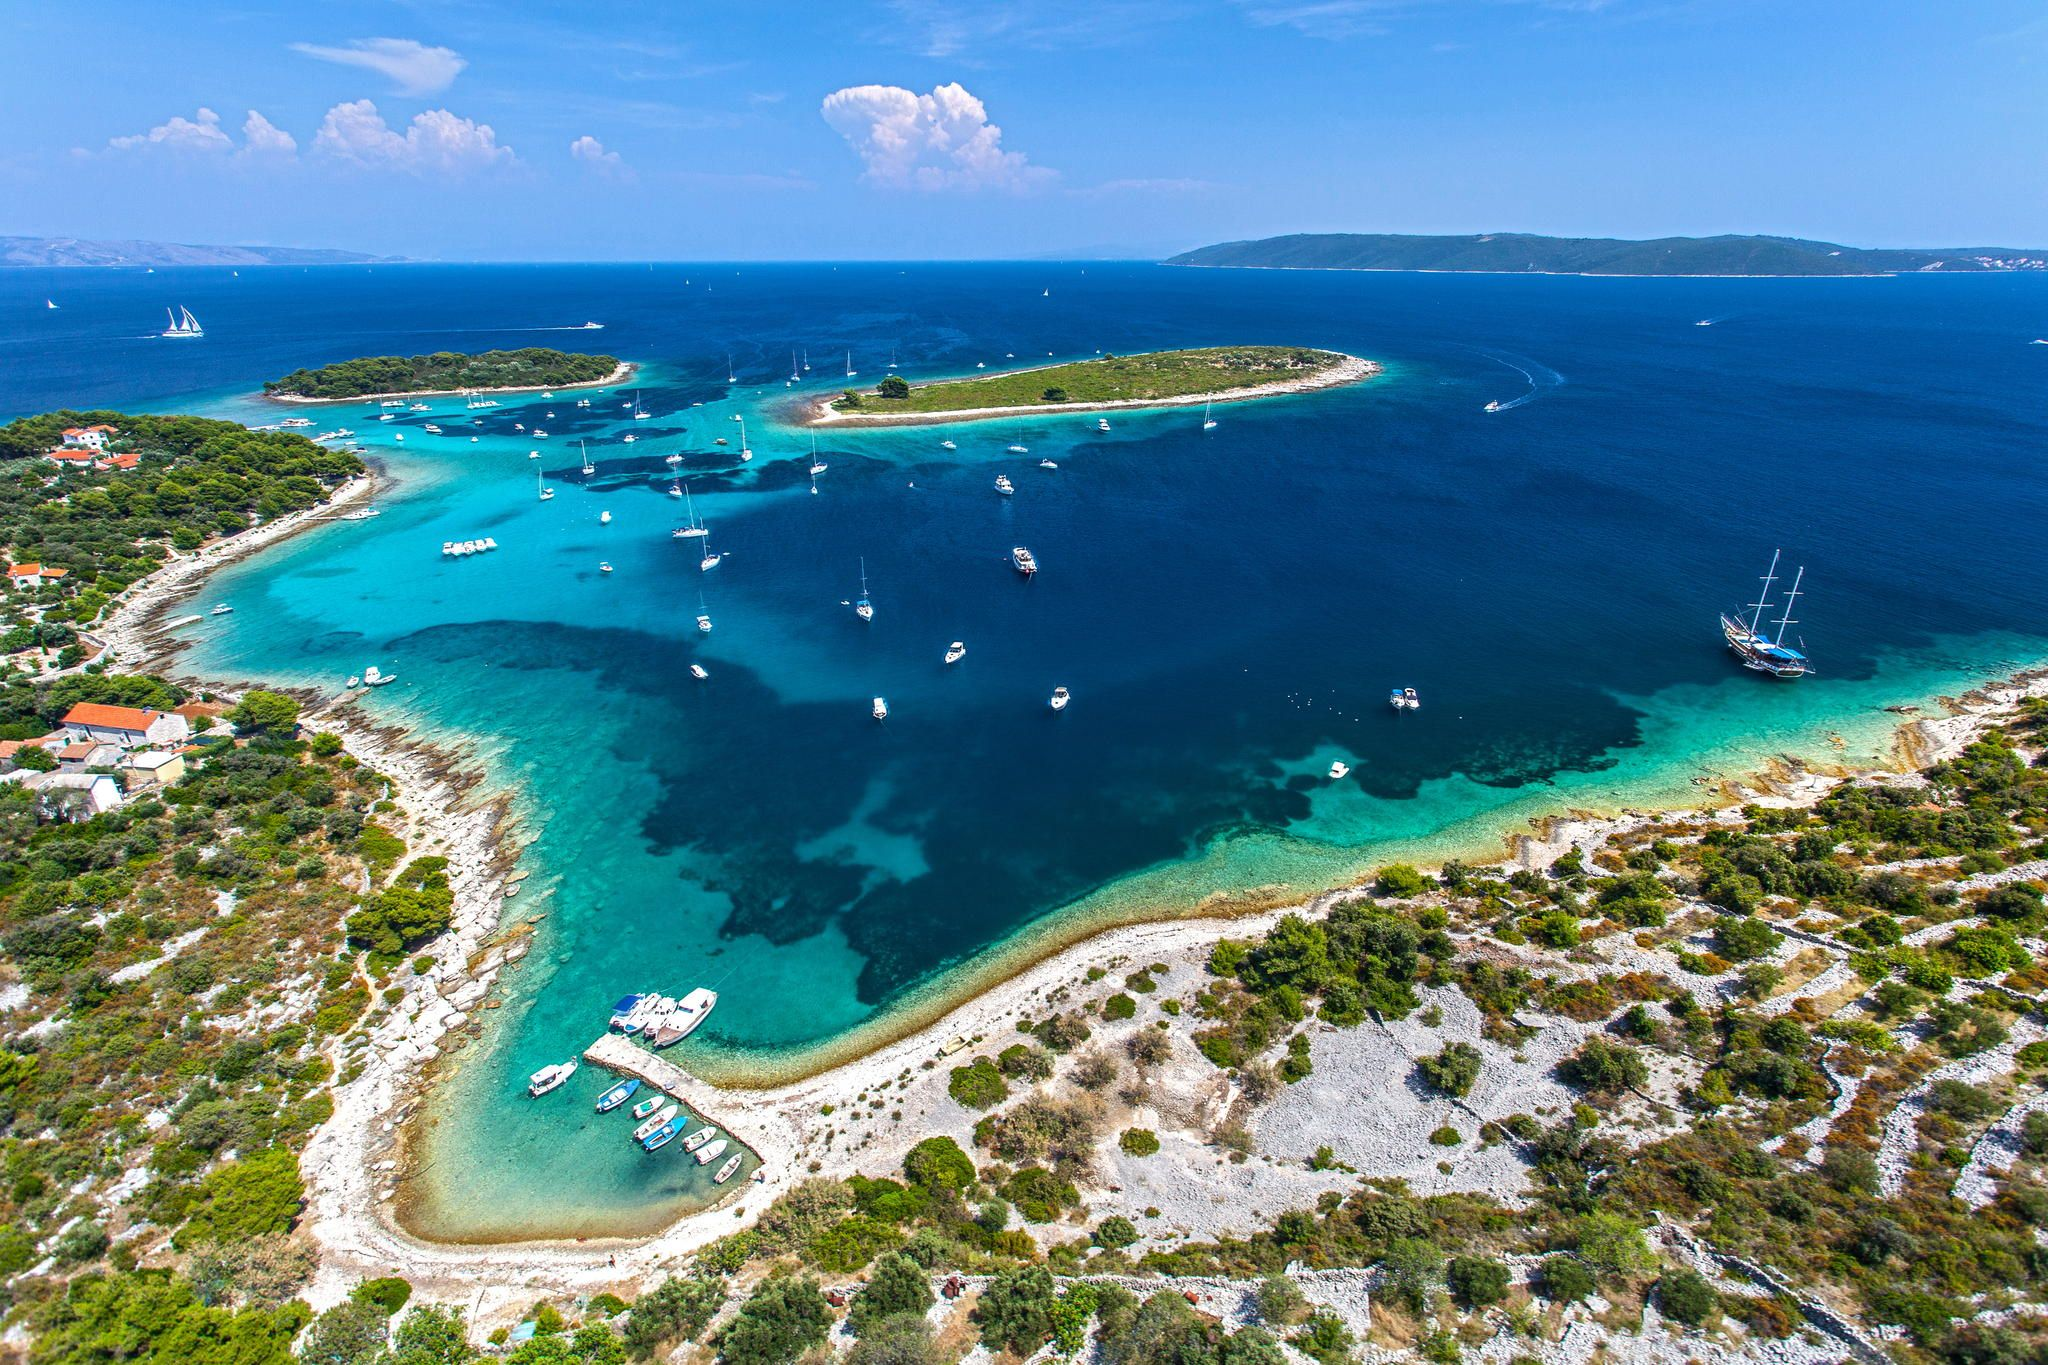 Bay with turquoise waters and sailboats at berth by Mario Jelavic on 500px